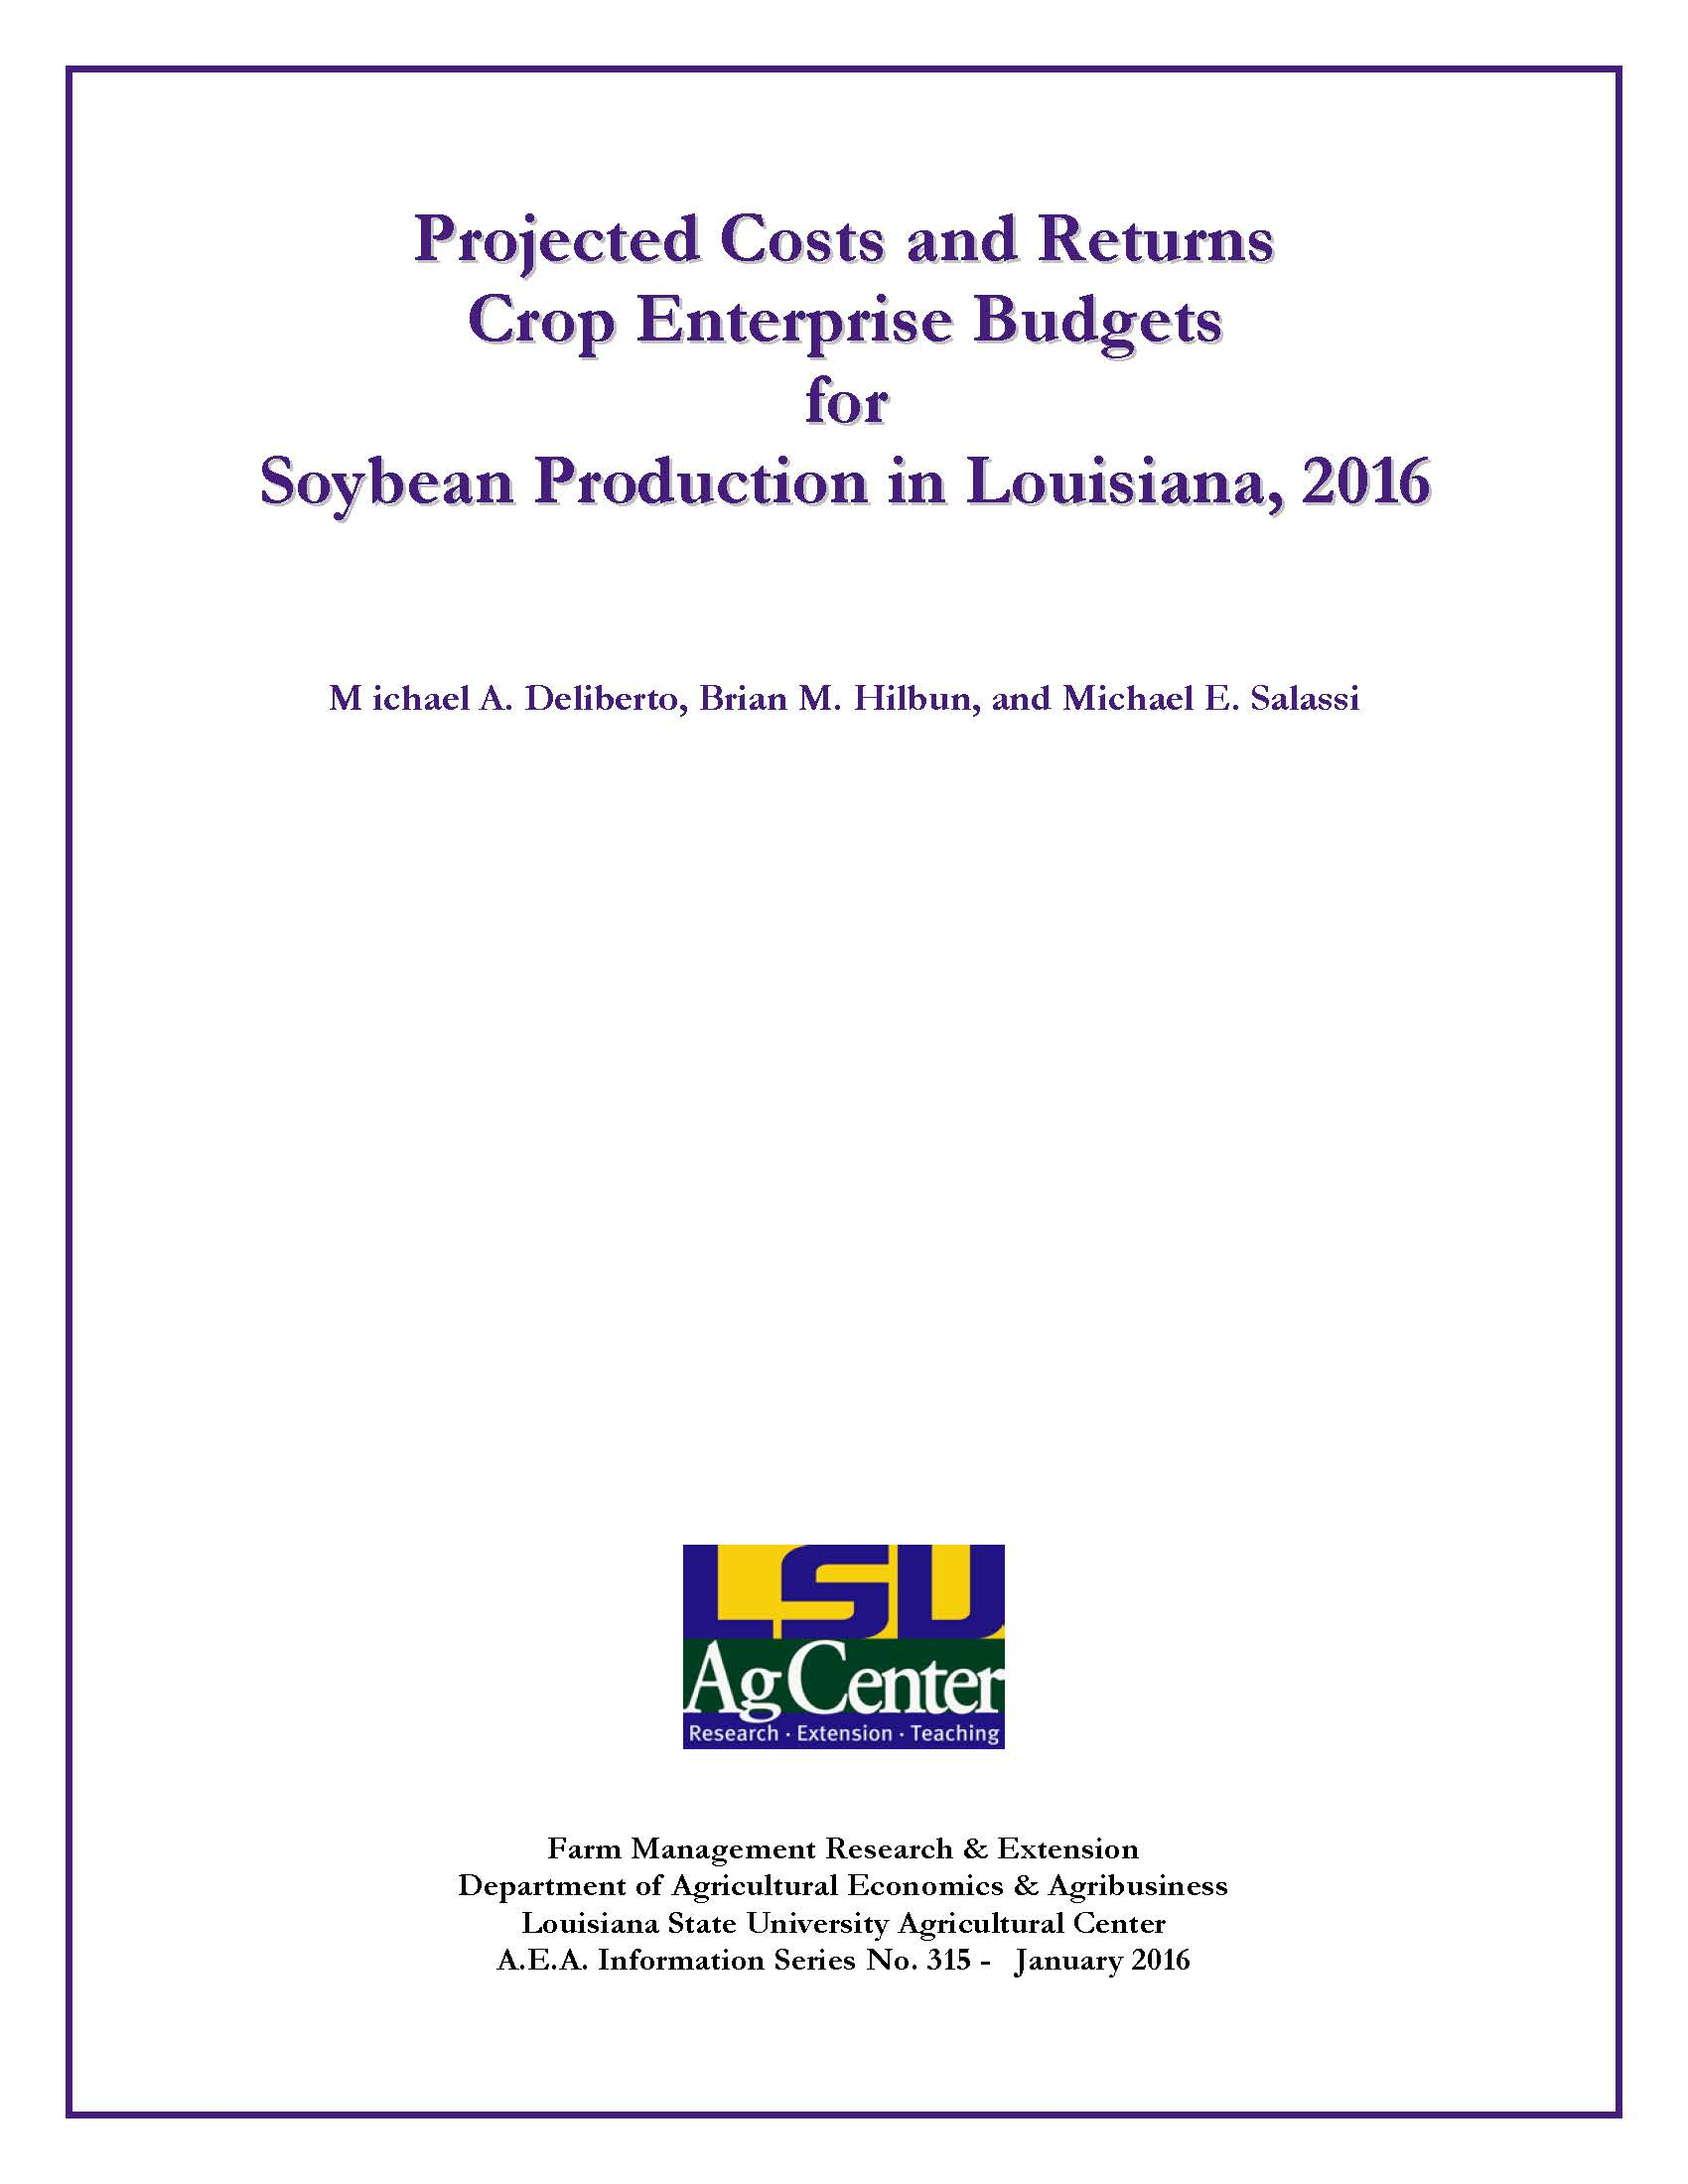 2016 Soybean Budgets